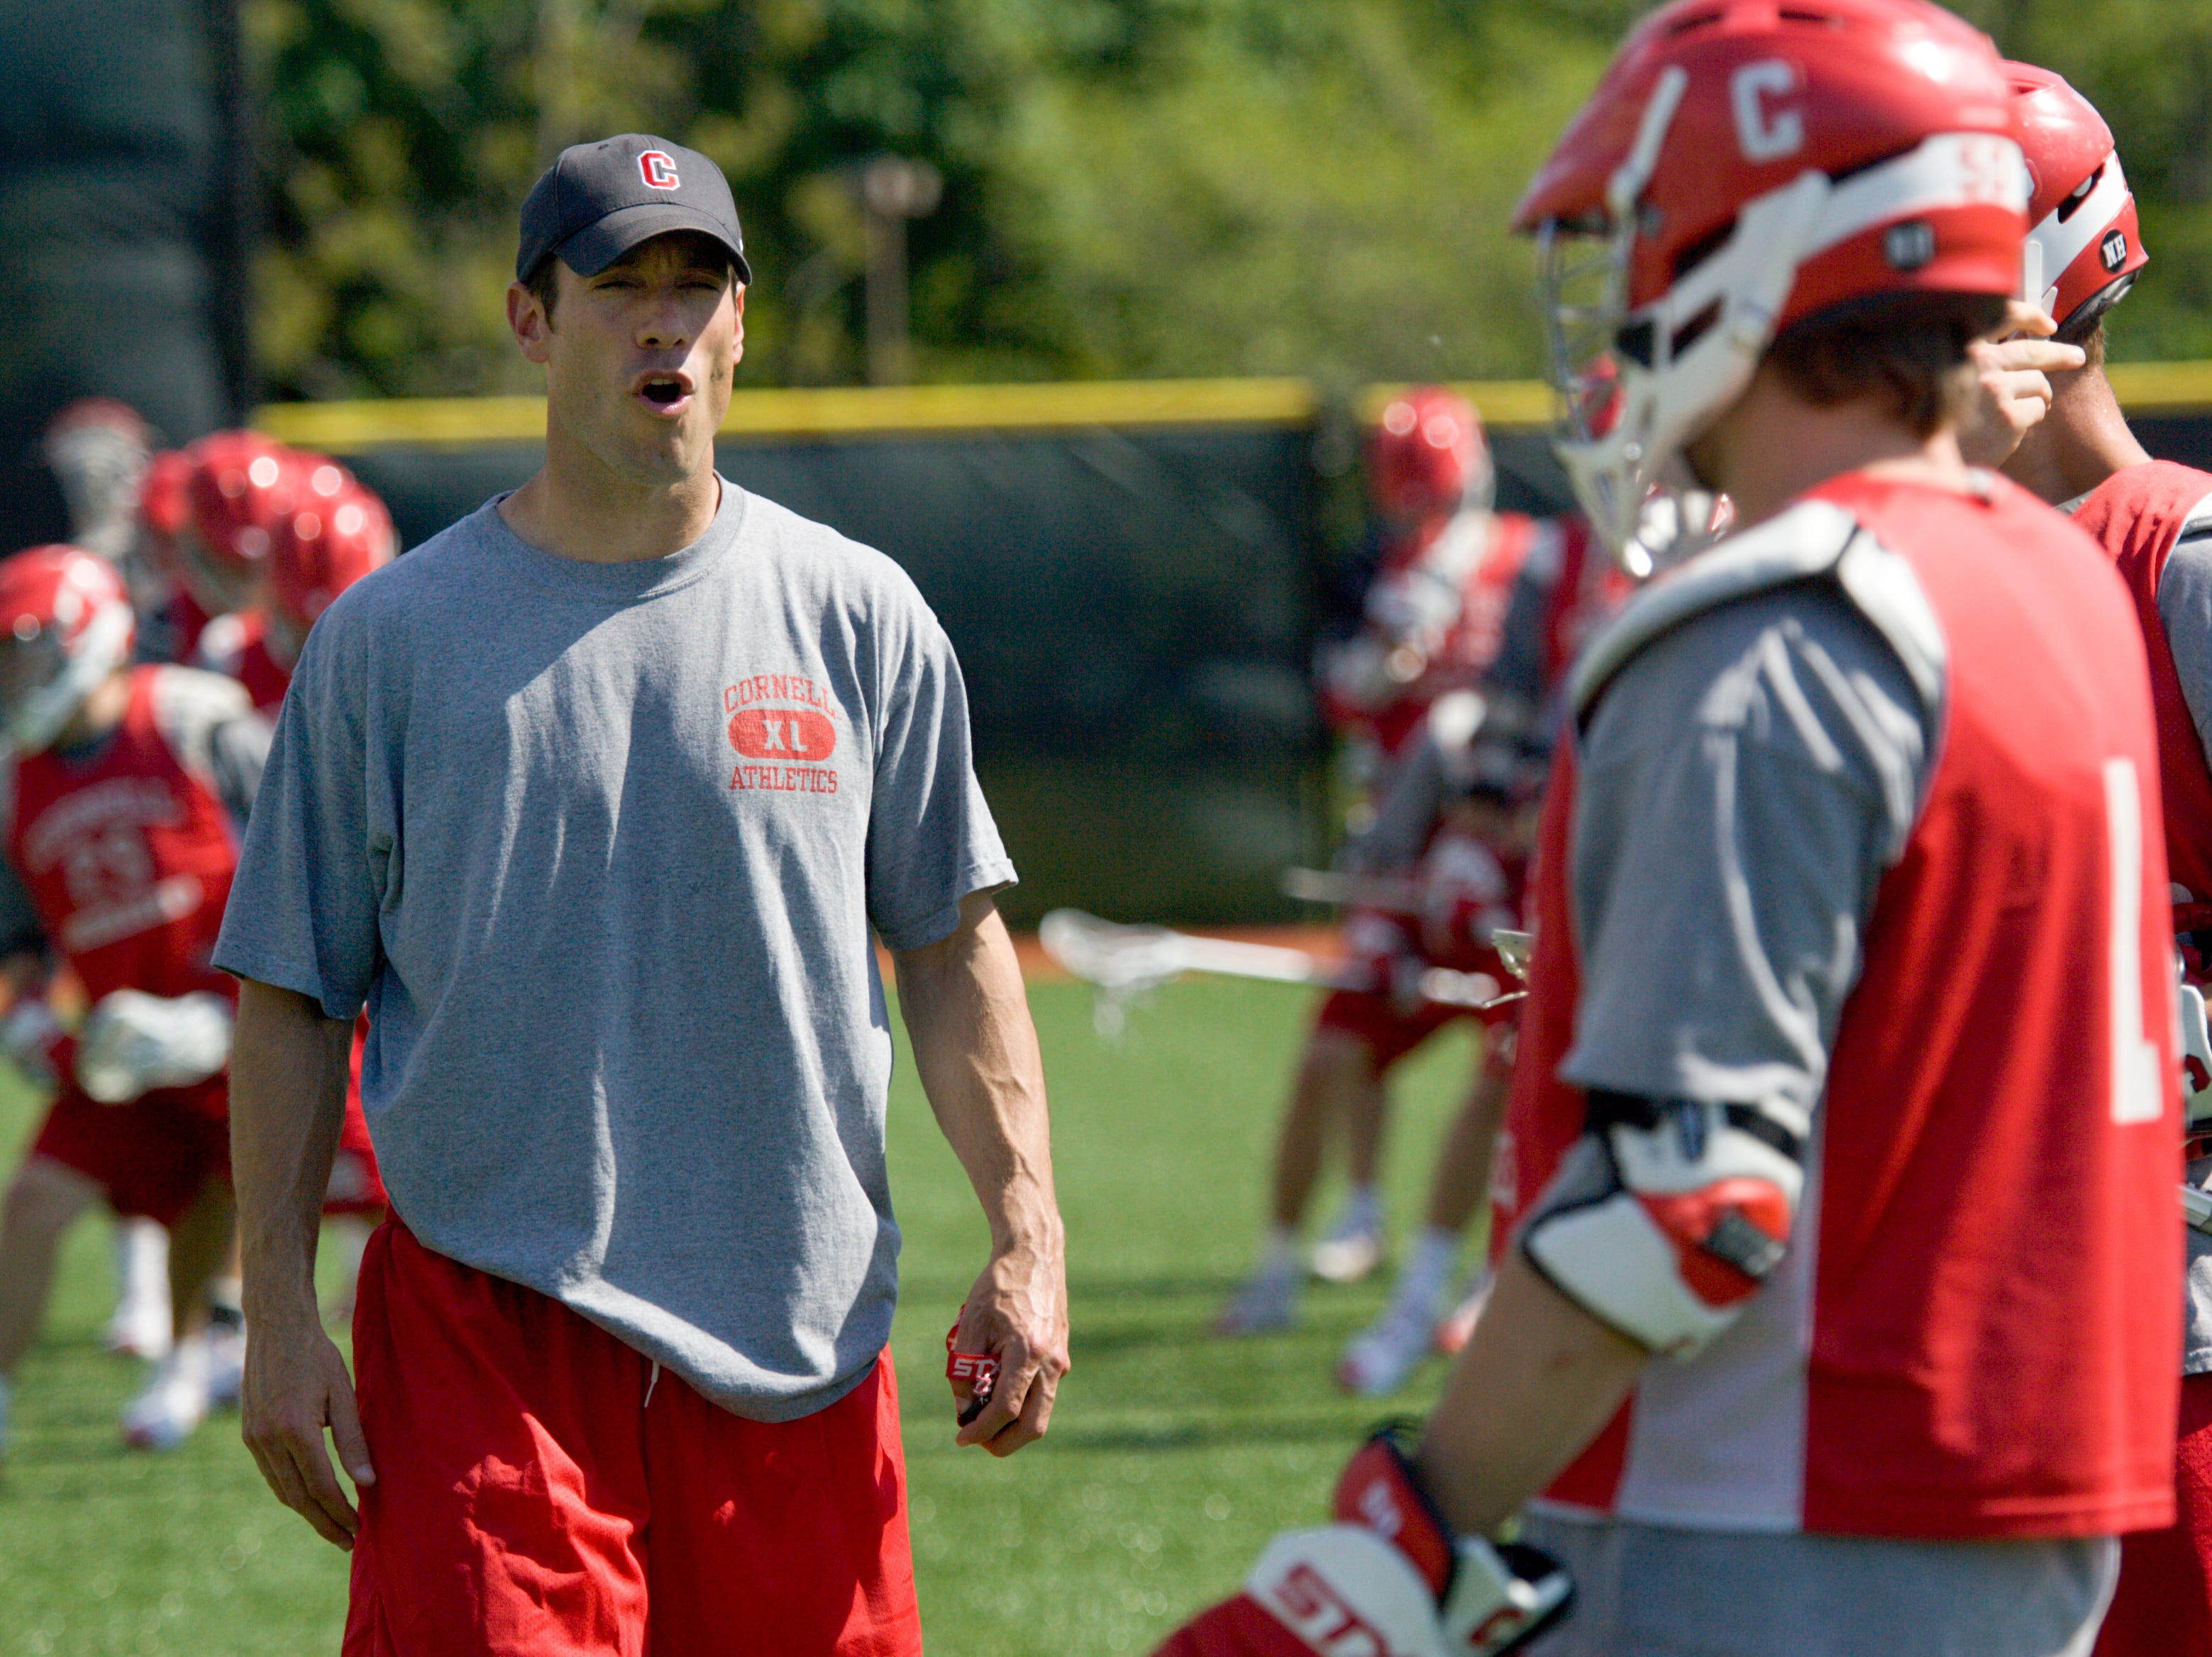 2009: Cornell Men's Lacrosse Coach Jeff Tambroni coaches Wednesday during practice at Cornell University.